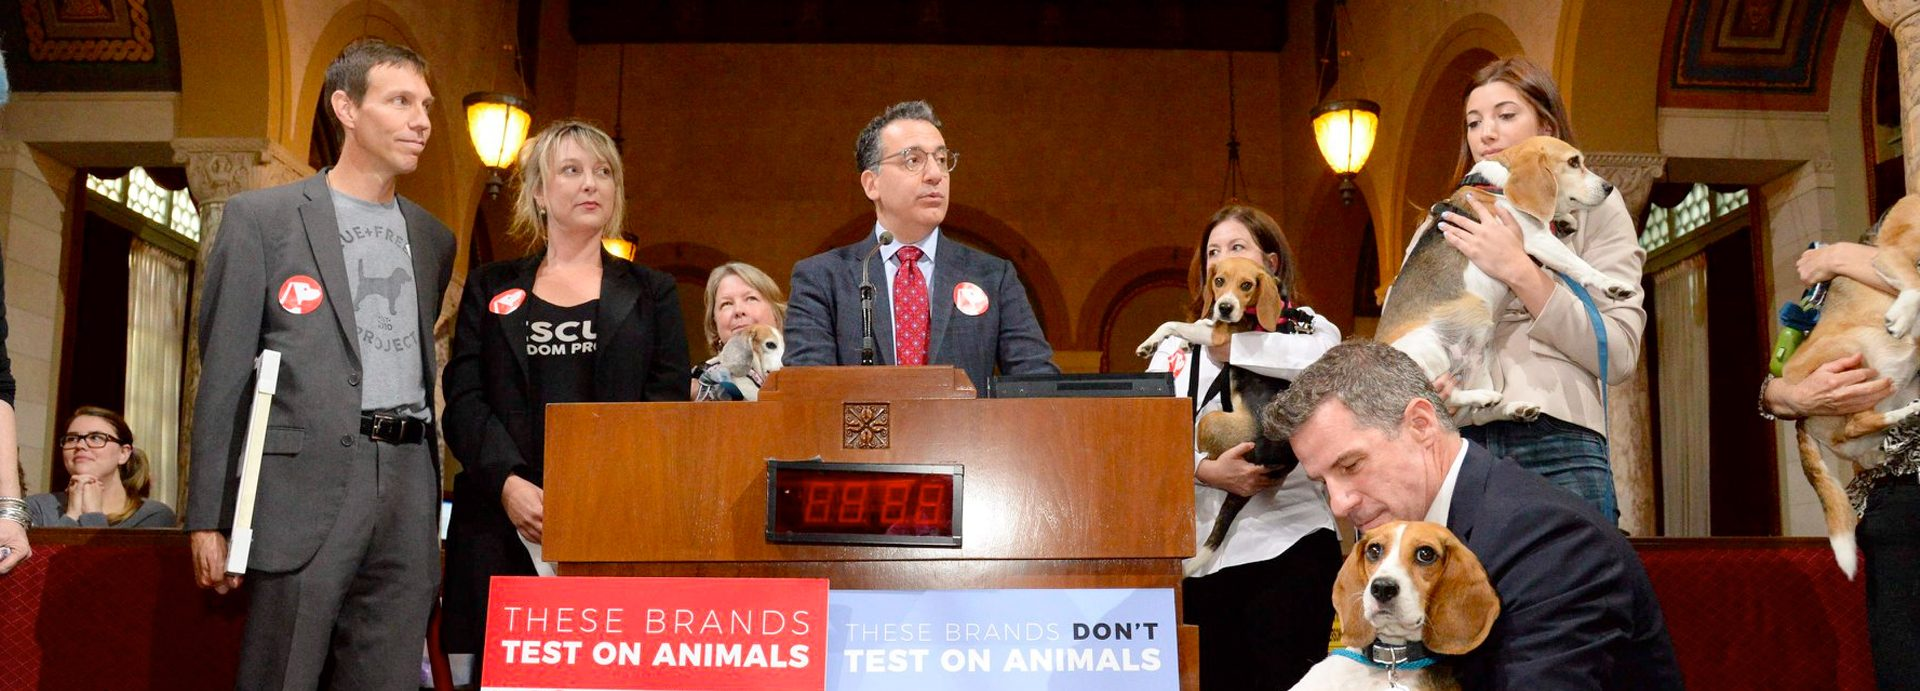 Motion Proposes LA Government Only Uses Cruelty-Free Products